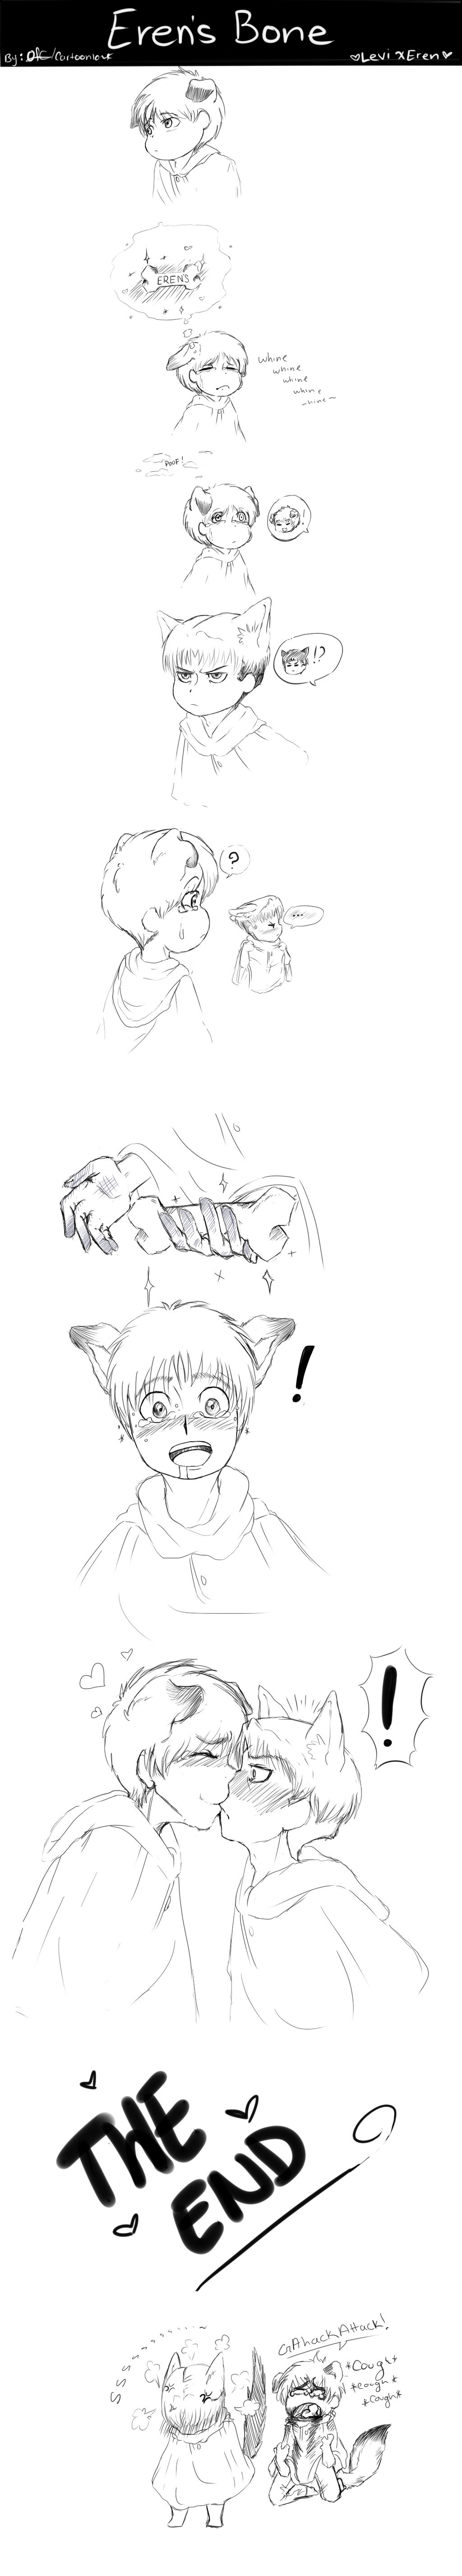 LxEComic- Eren's Bone by AmeUchikina-Chan